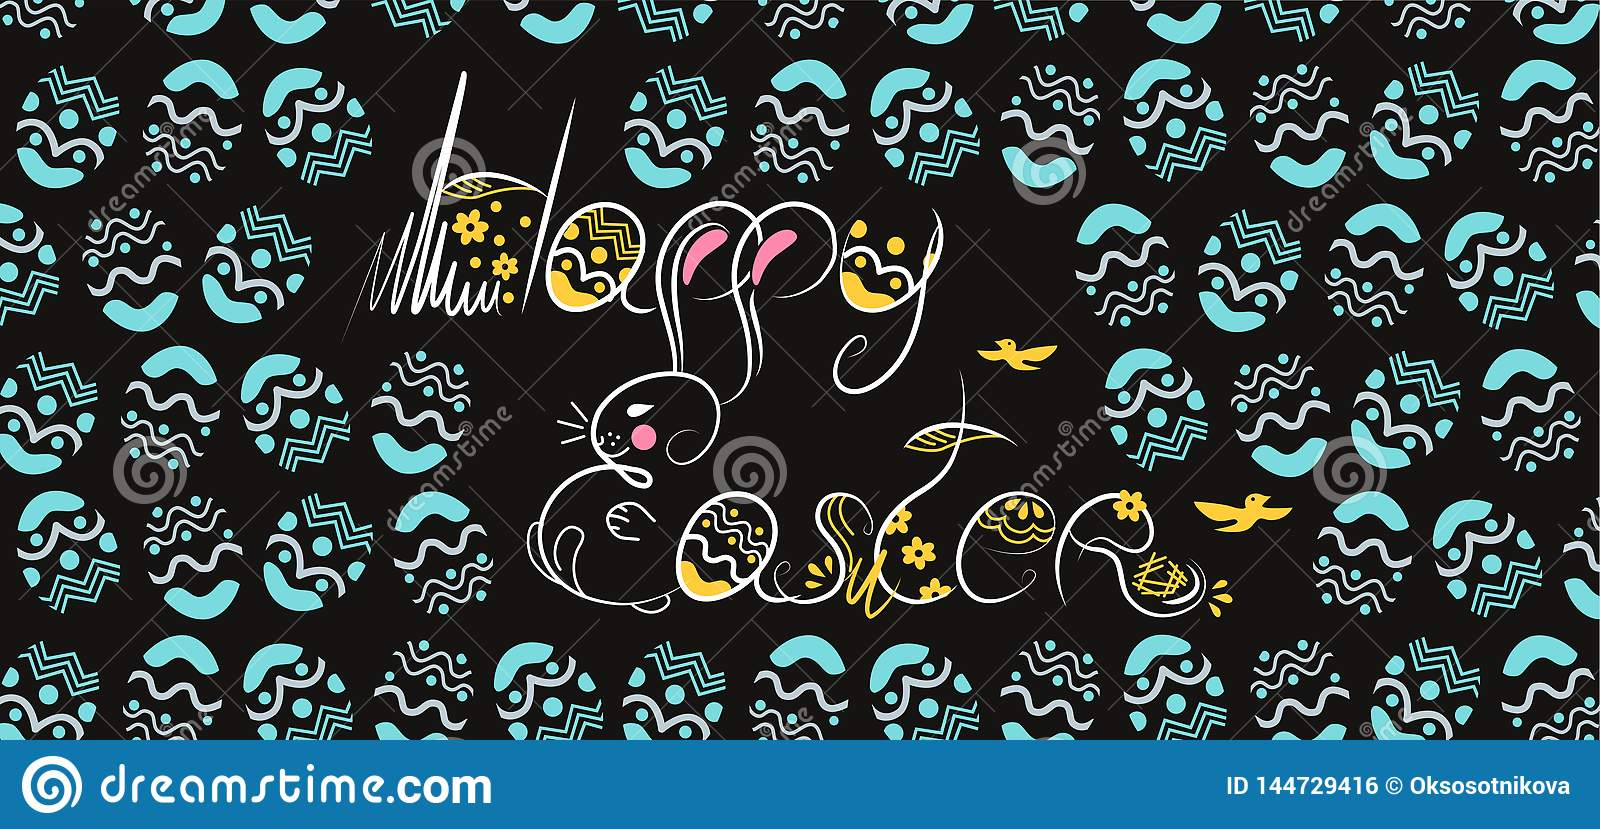 Decorative Easter composition hand drawn white font on black background. Funny doodle from bunny, eggs with flowers, leaves.